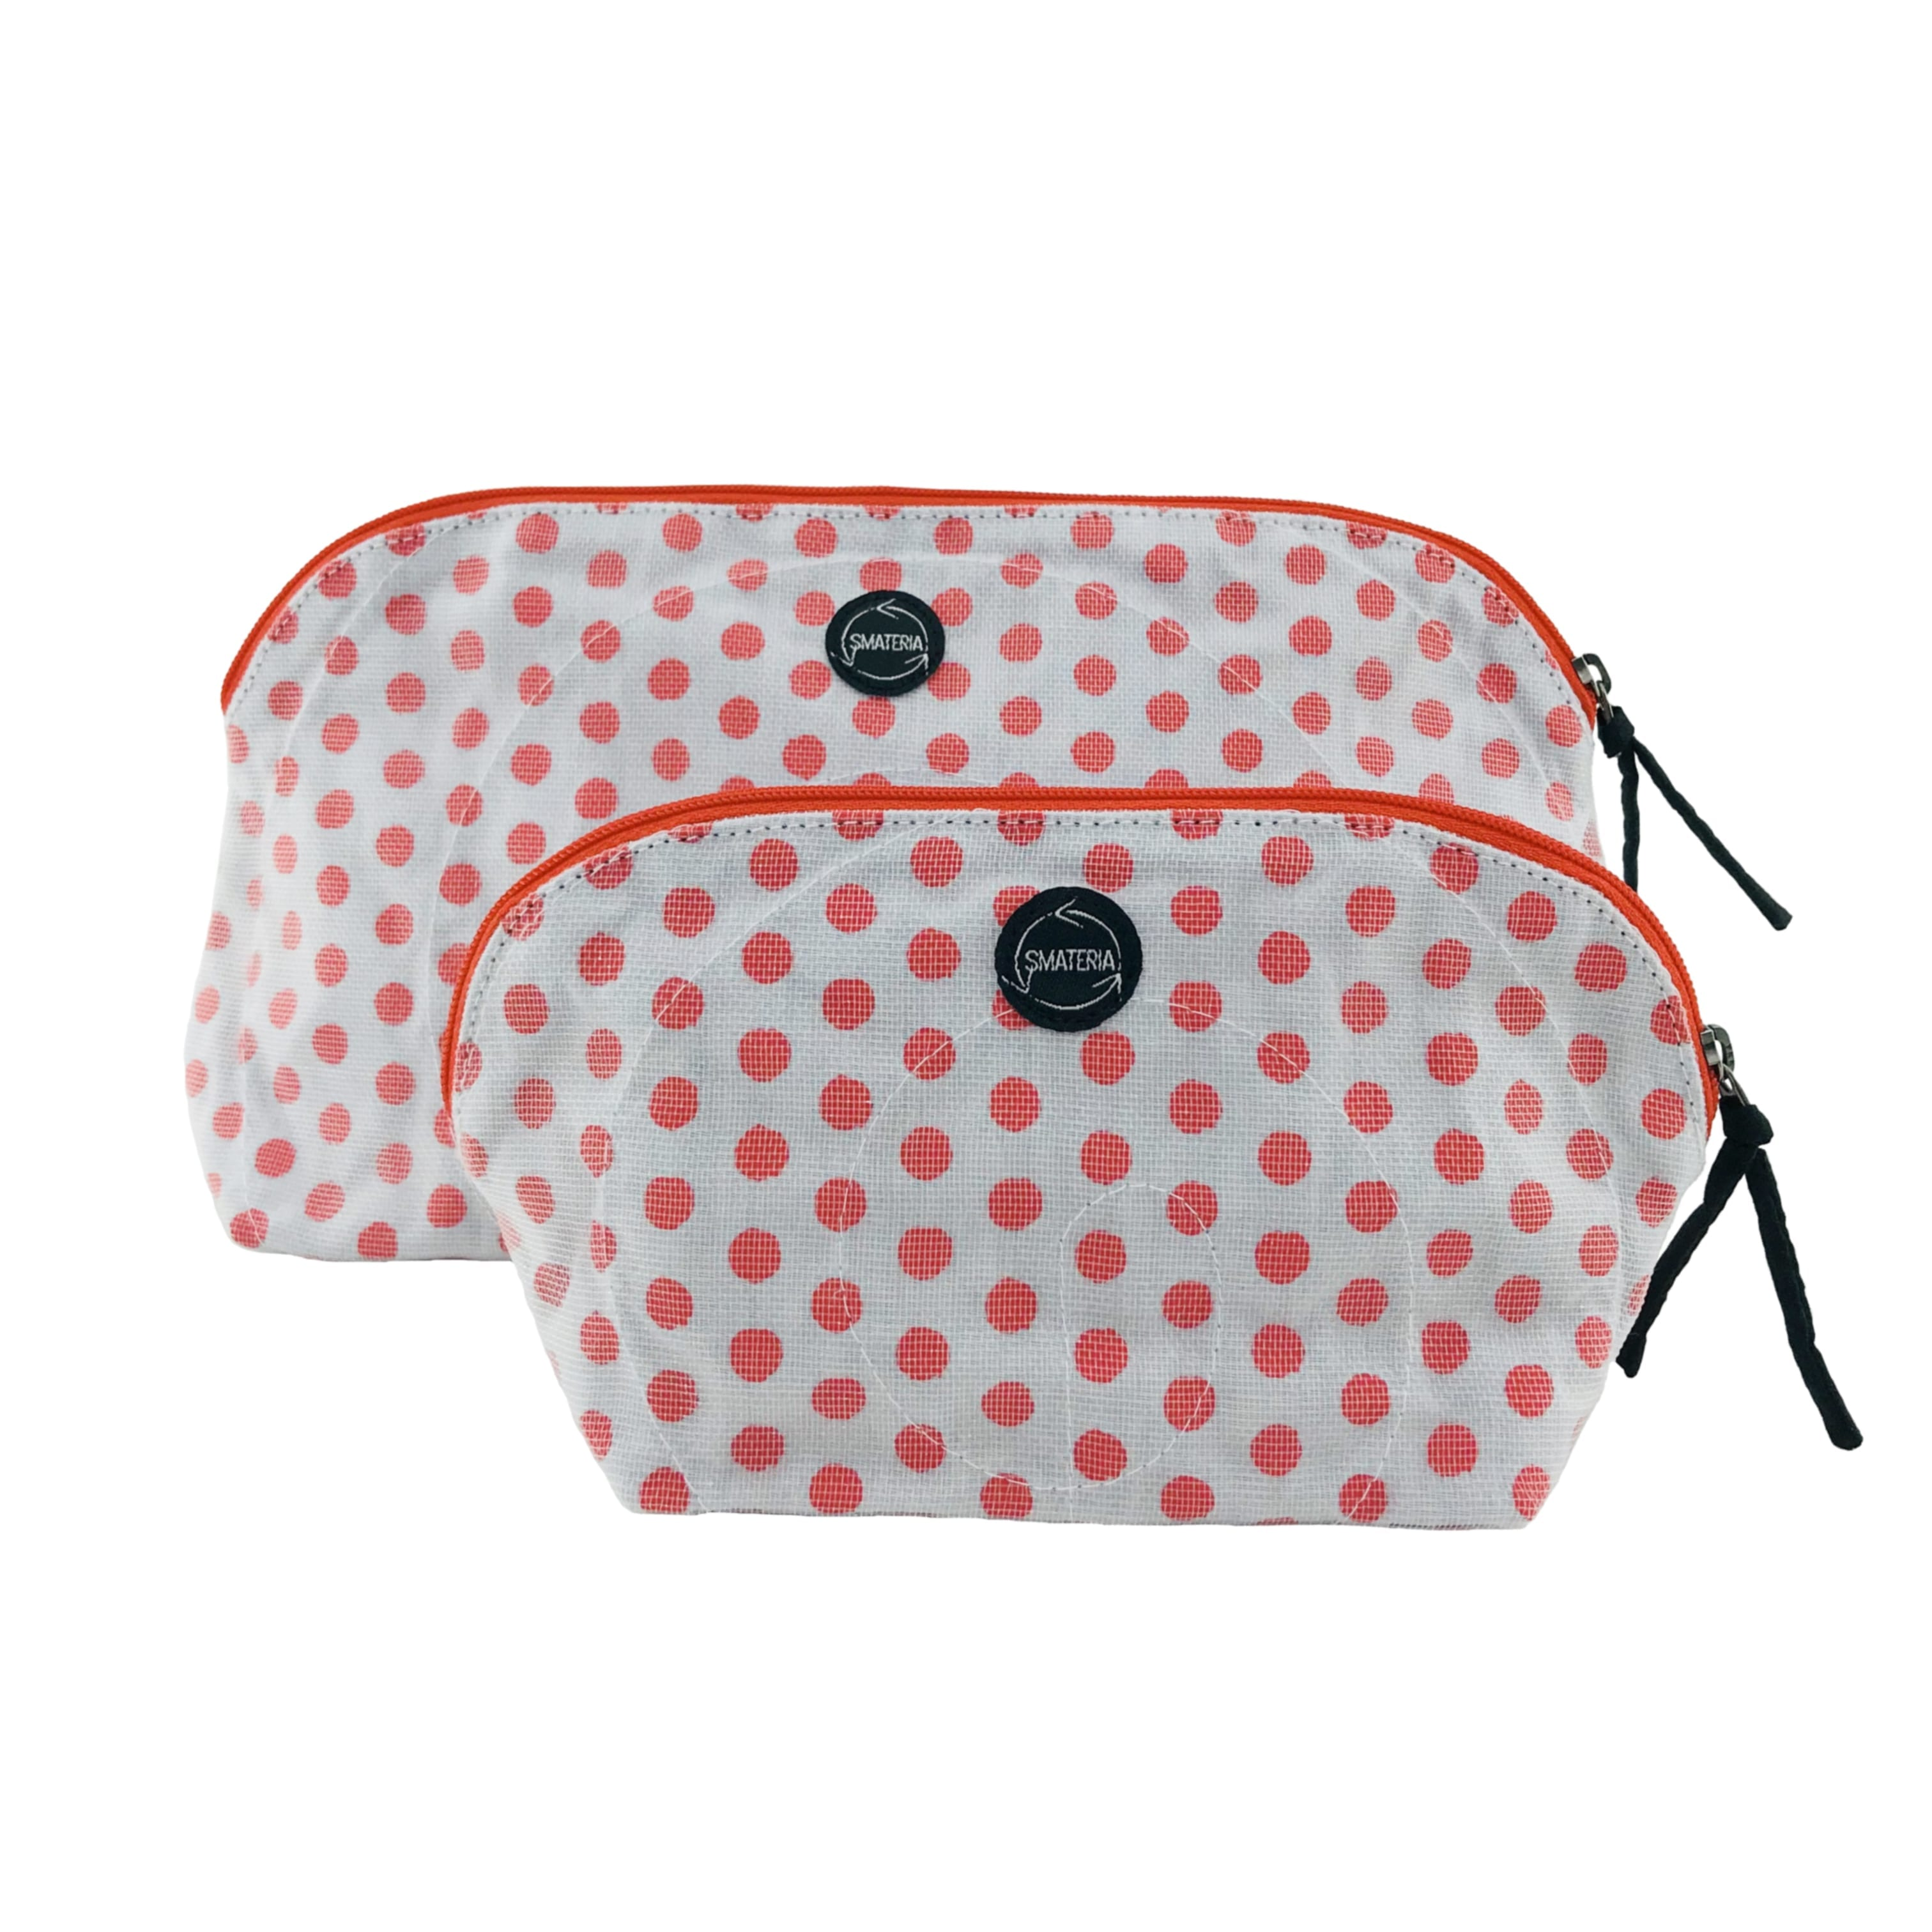 La Trousse de maquillage - Grand - Petit - Pois rouges